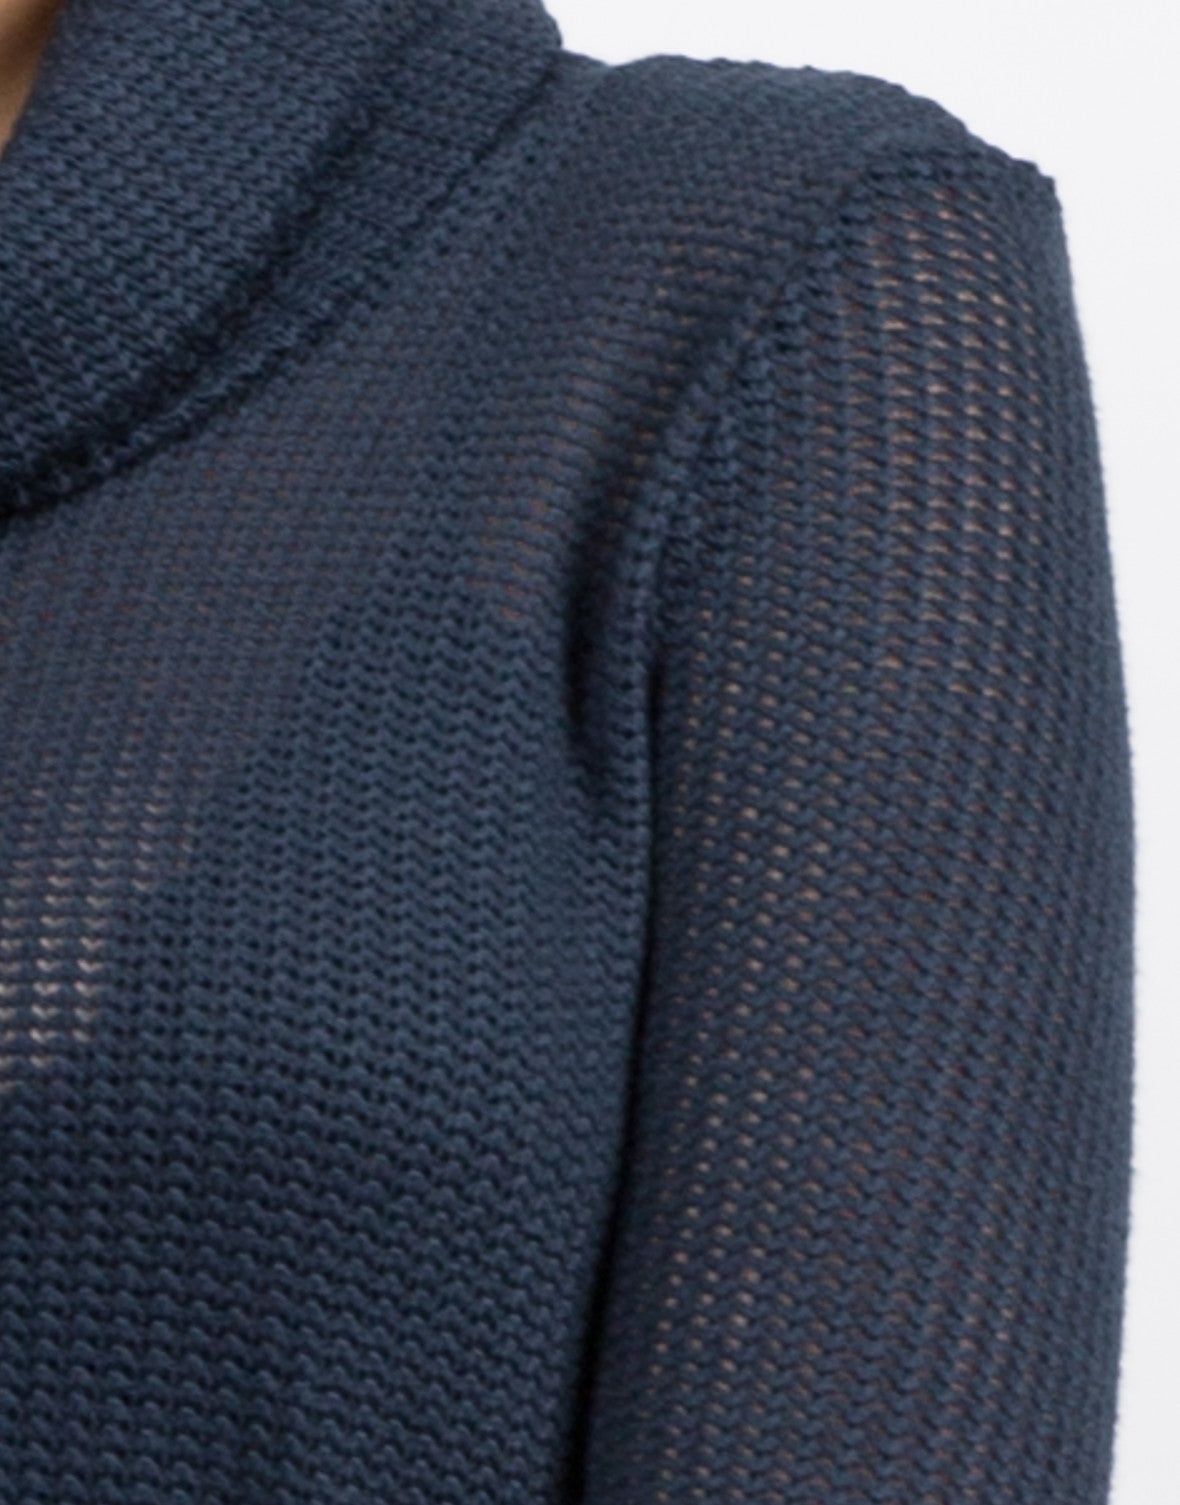 Detail of Knit Turtleneck Tunic Top